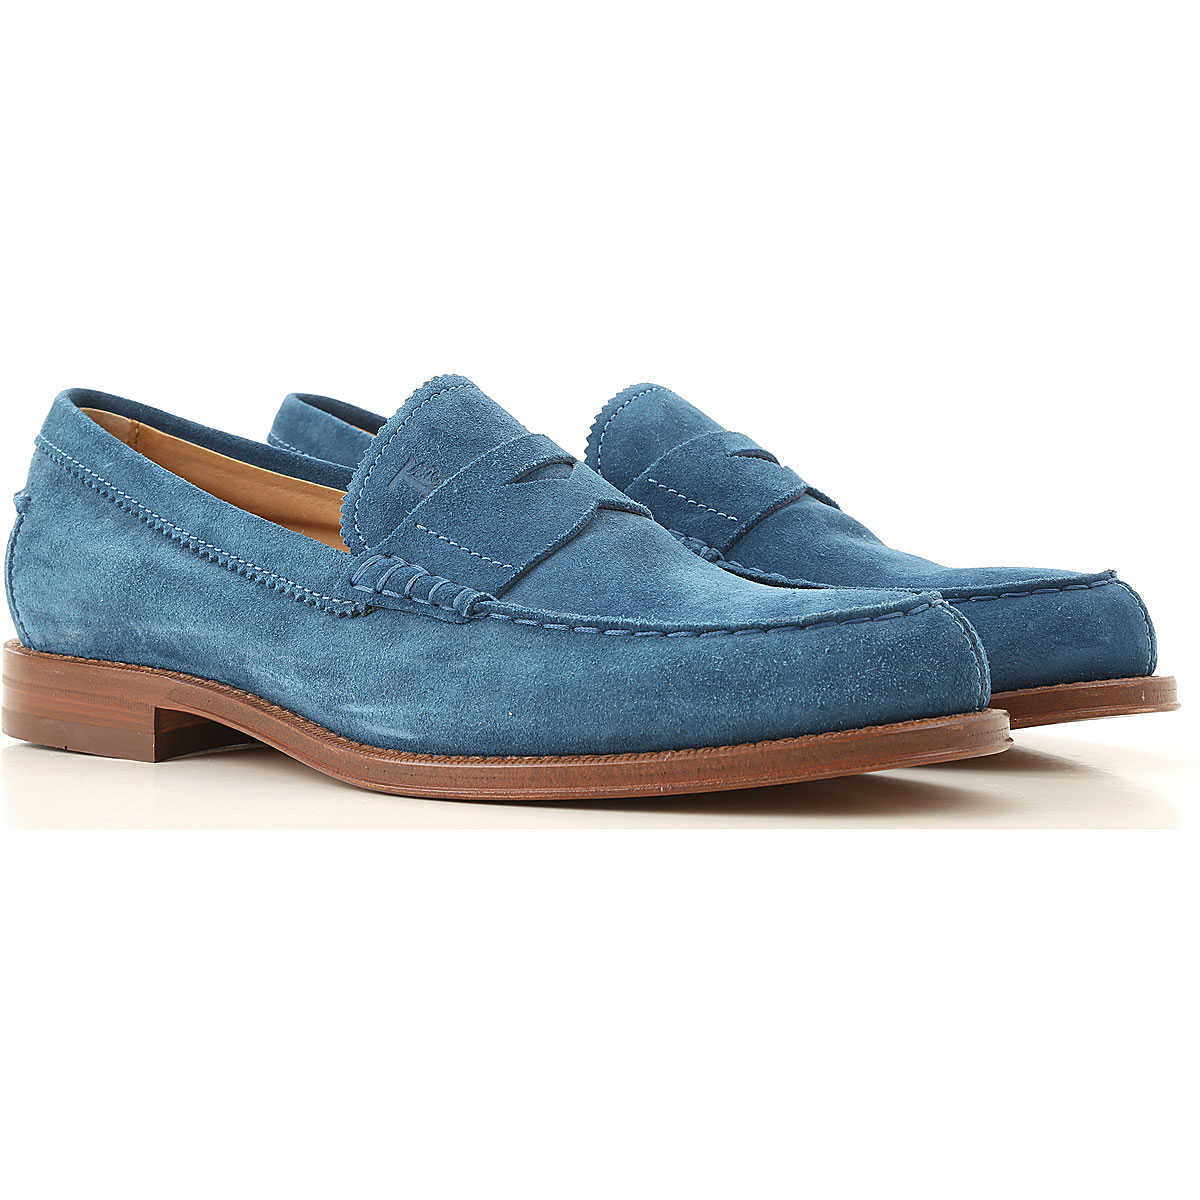 Tods Loafers for Men On Sale Cobalt Turquoise DK - GOOFASH - Mens LOAFERS